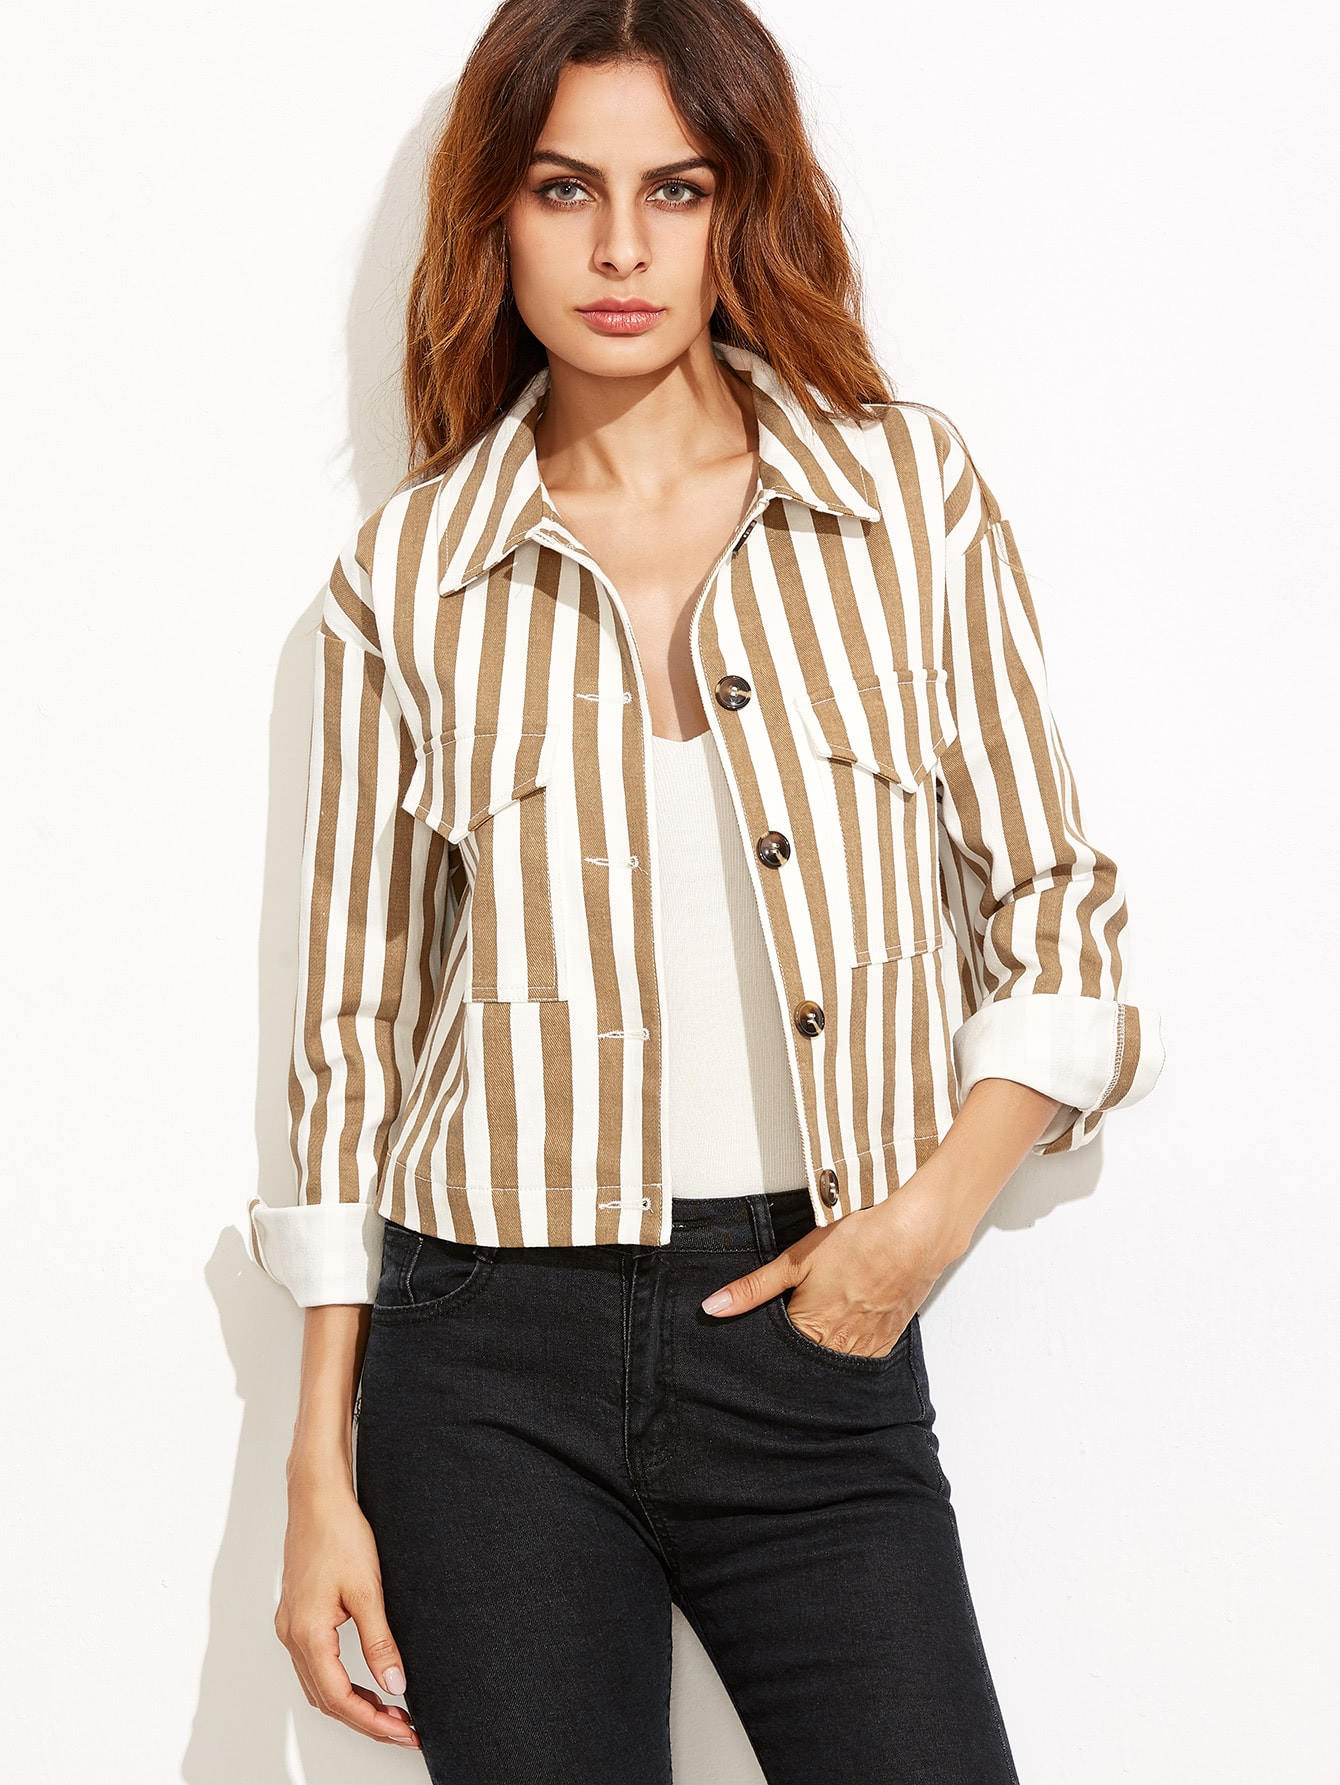 Coffee Vertical Striped Flap Pocket Front Button Up Jacket jacket160923703